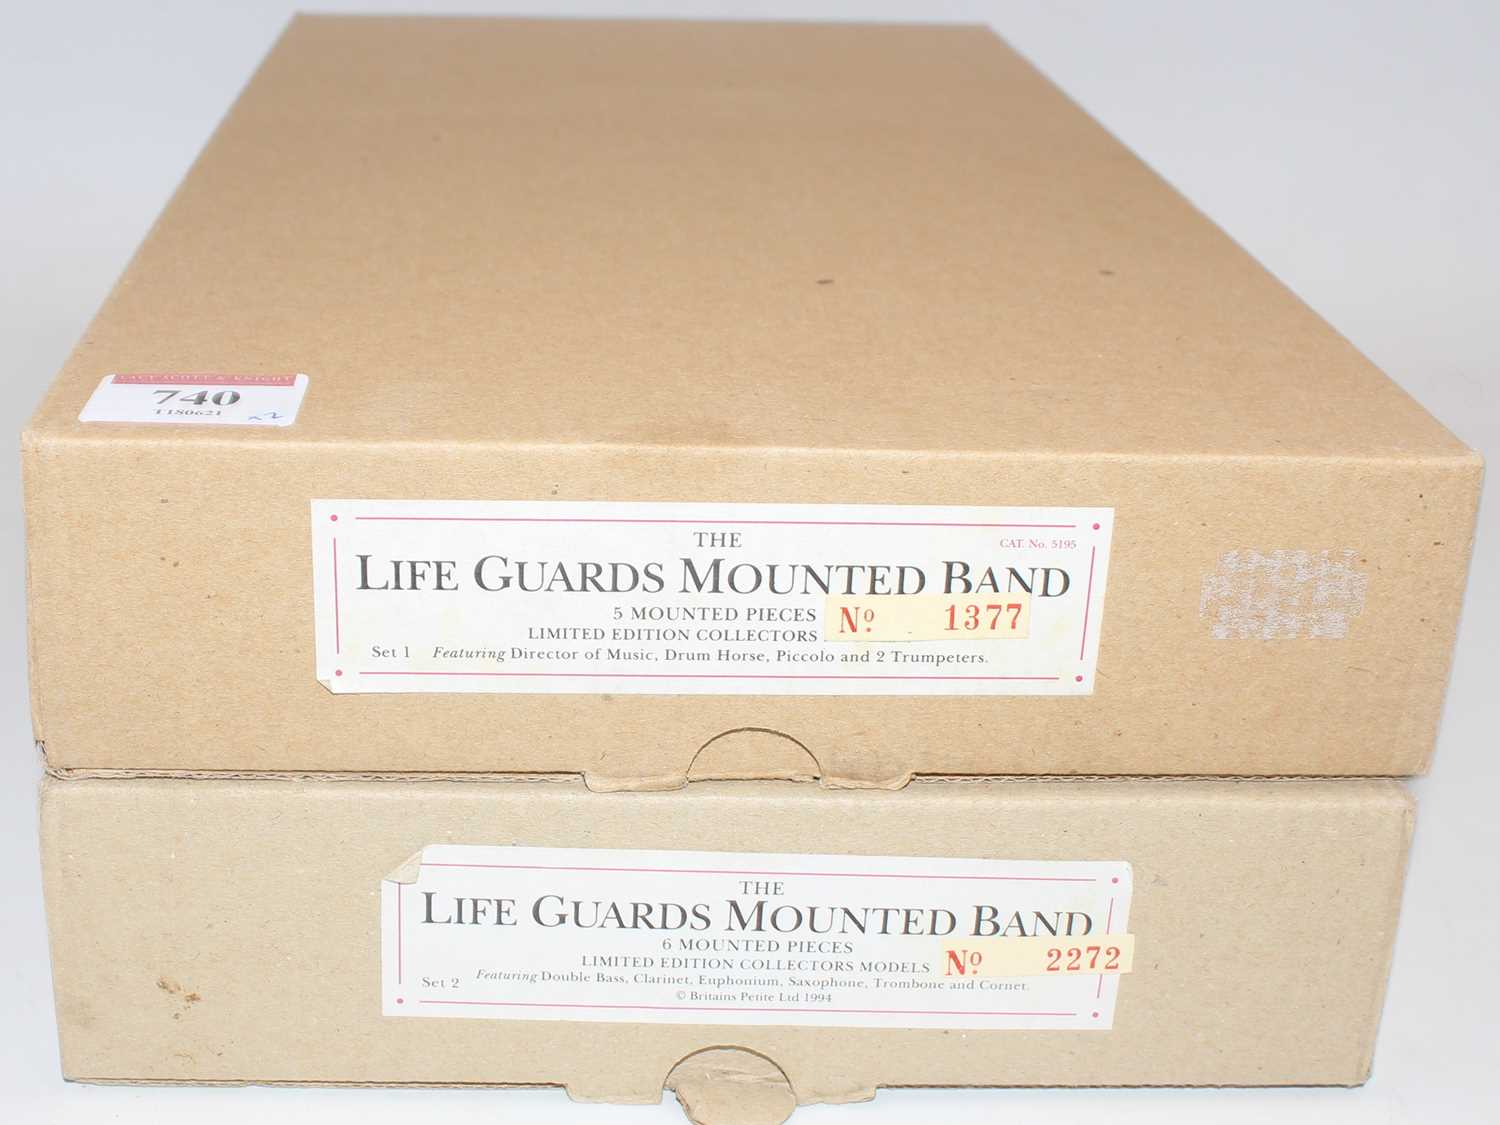 A Britains modern release limited edition lifeguards mounted band gift set group, two examples to